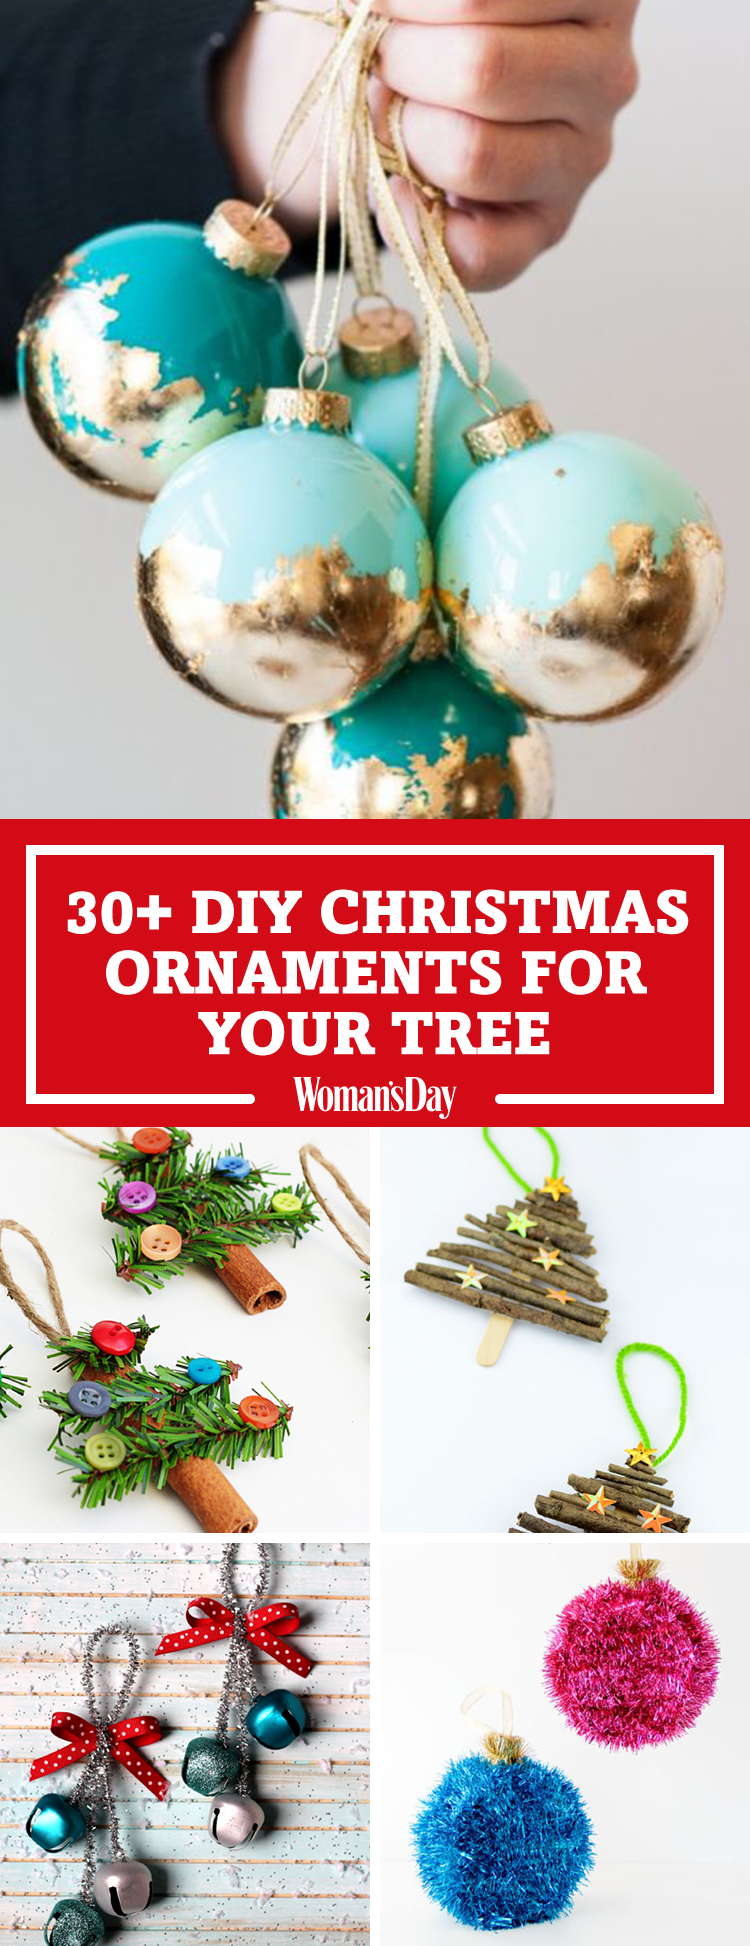 42 Homemade DIY Christmas Ornament Craft Ideas - How To Make Holiday  Ornaments 31e0c8508